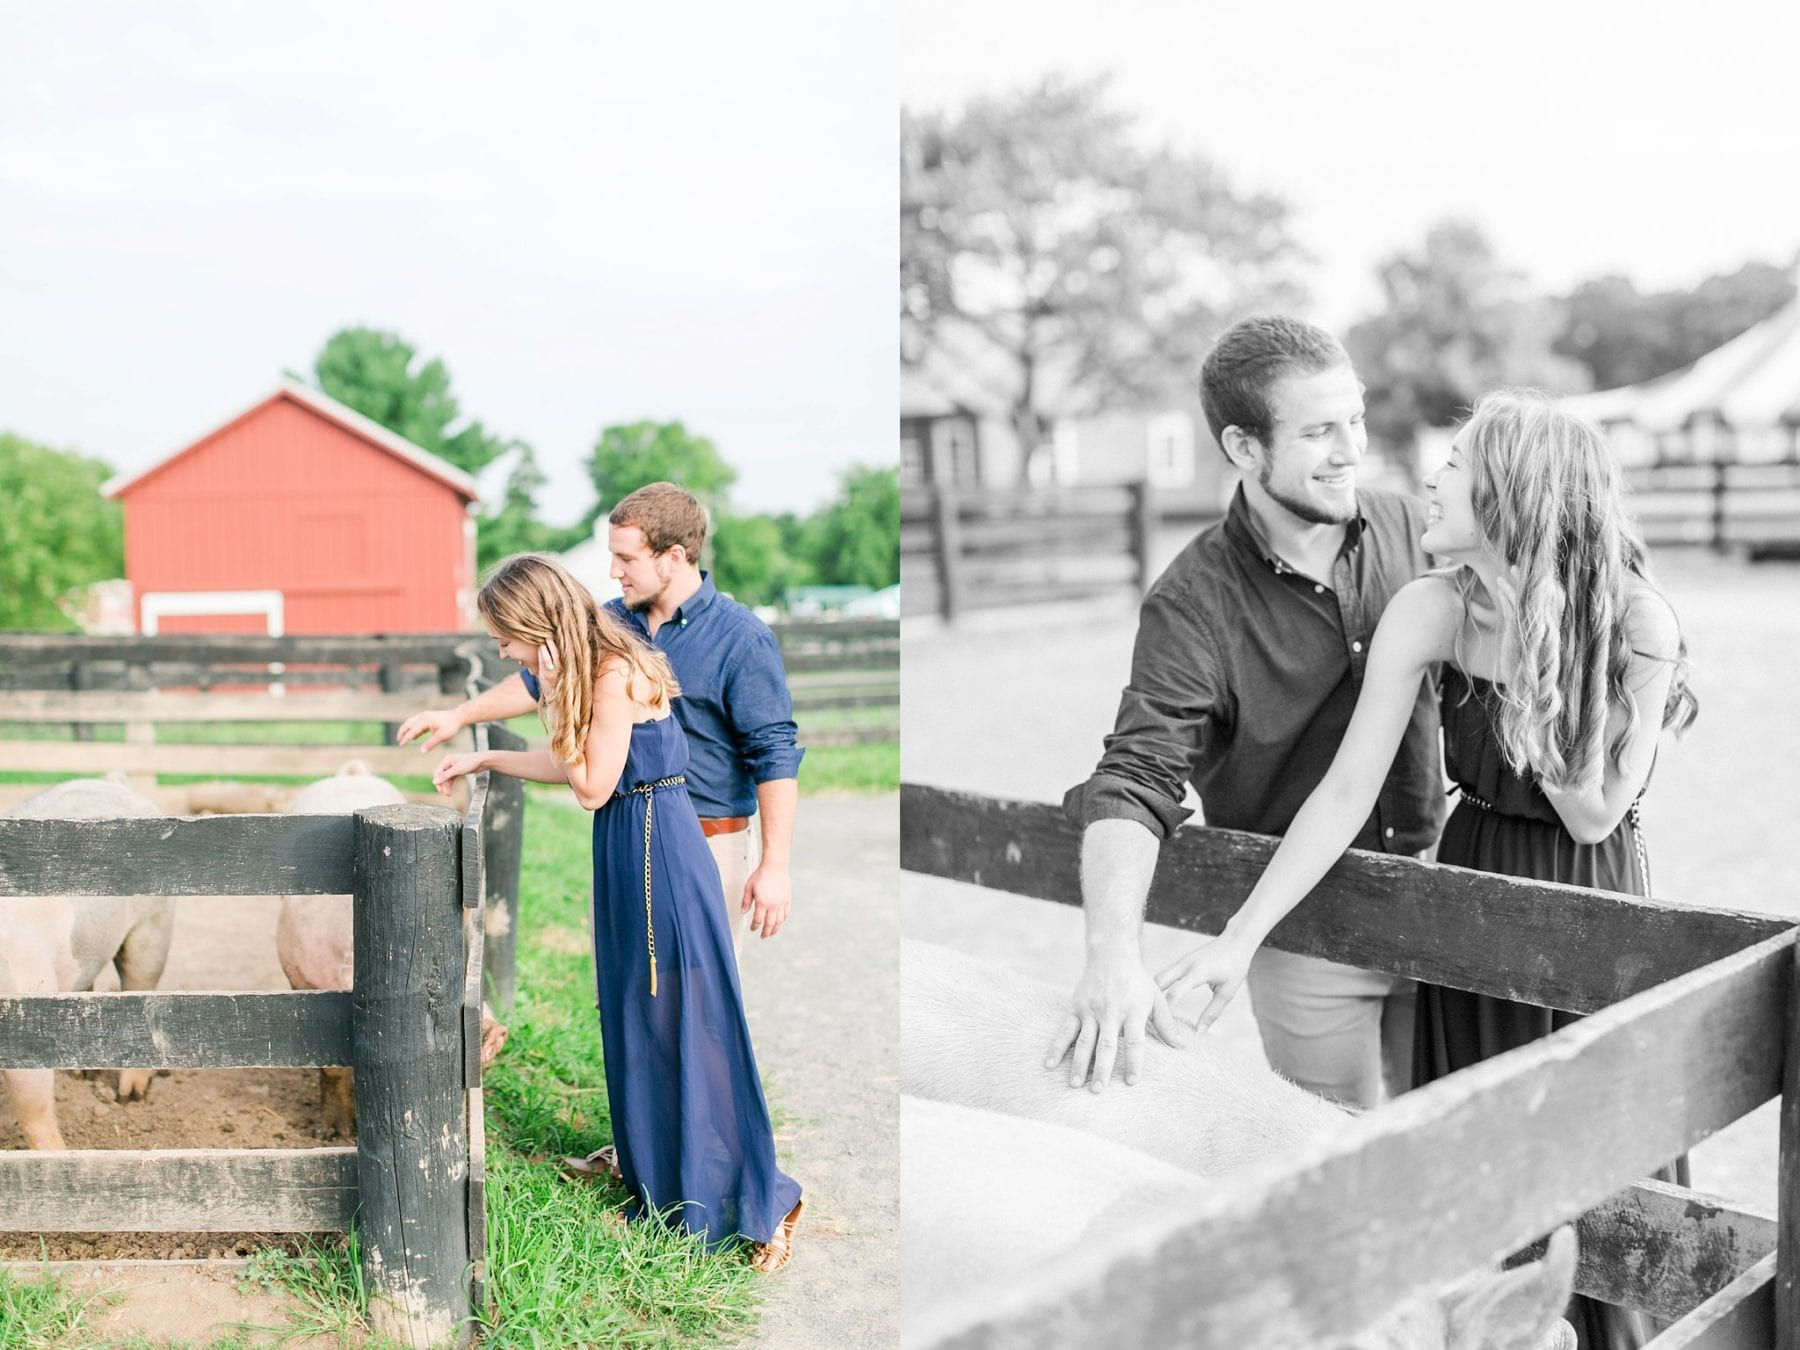 County Fair Engagement Photos Virginia Wedding Photographer Megan Kelsey Photography Samantha & Charles-219.JPG